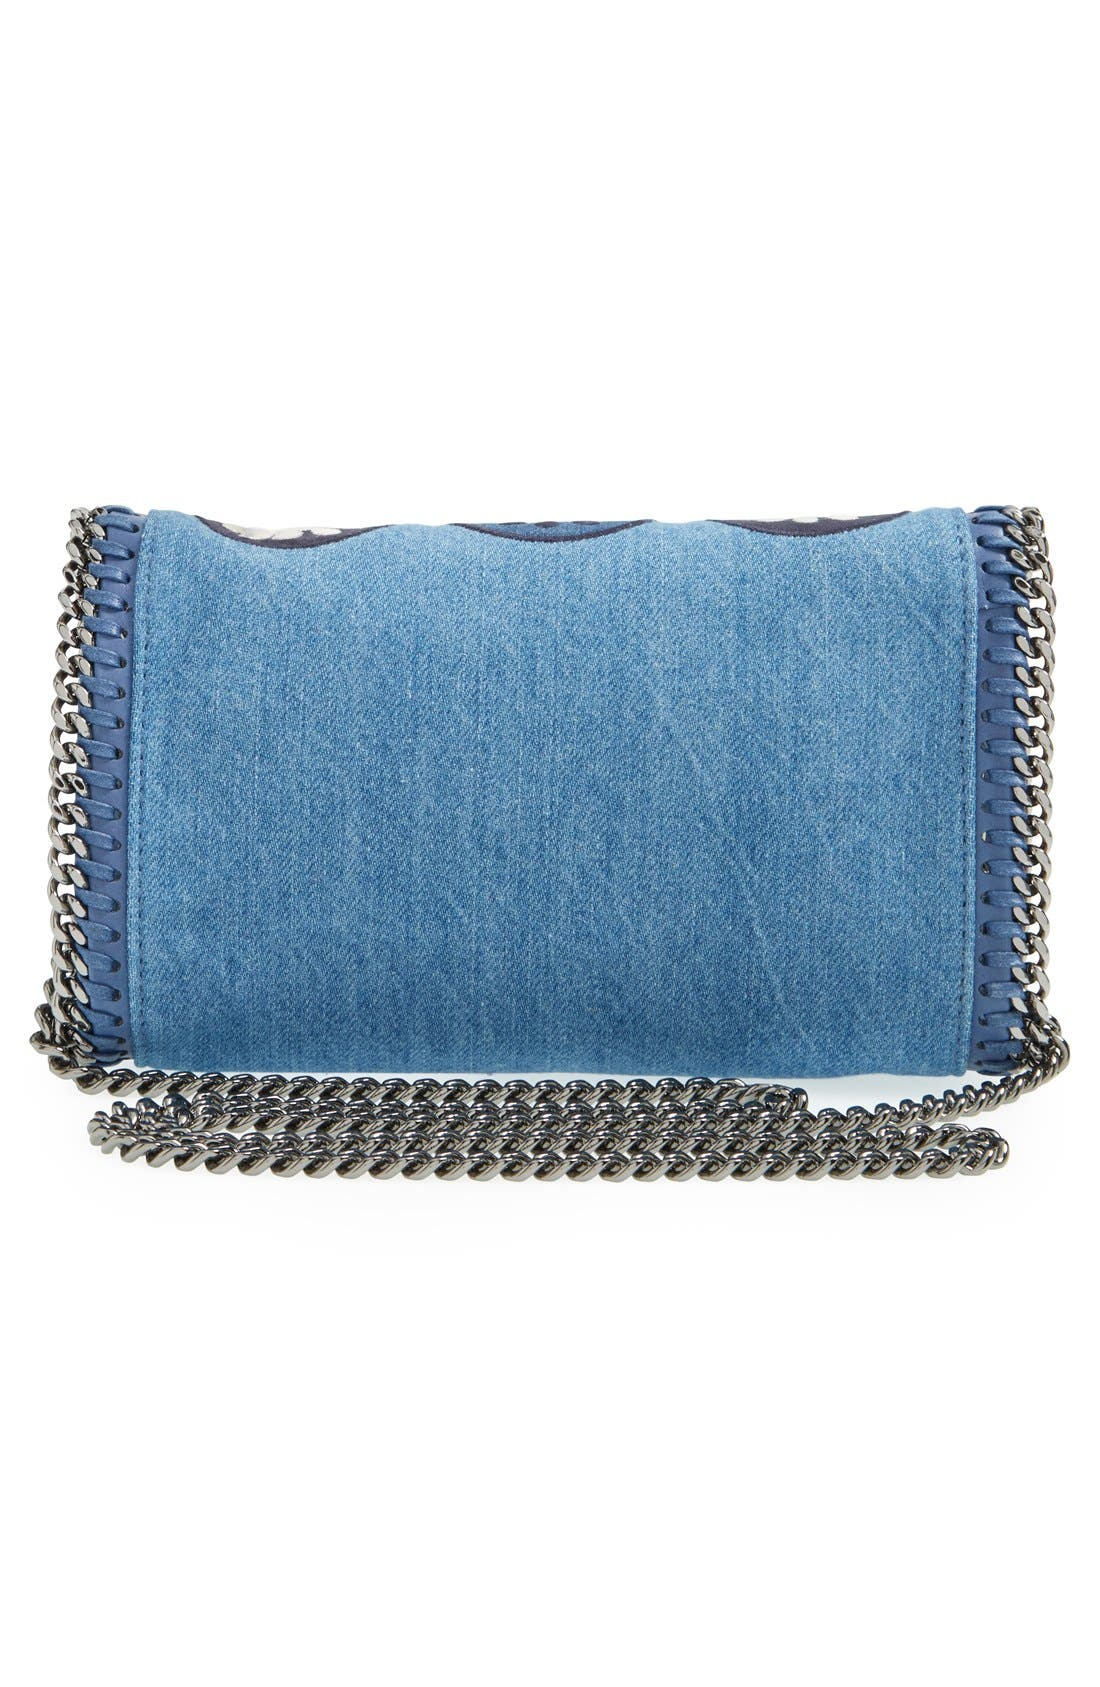 Alternate Image 3  - Stella McCartney 'Falabella - Adorned' Denim Crossbody Bag